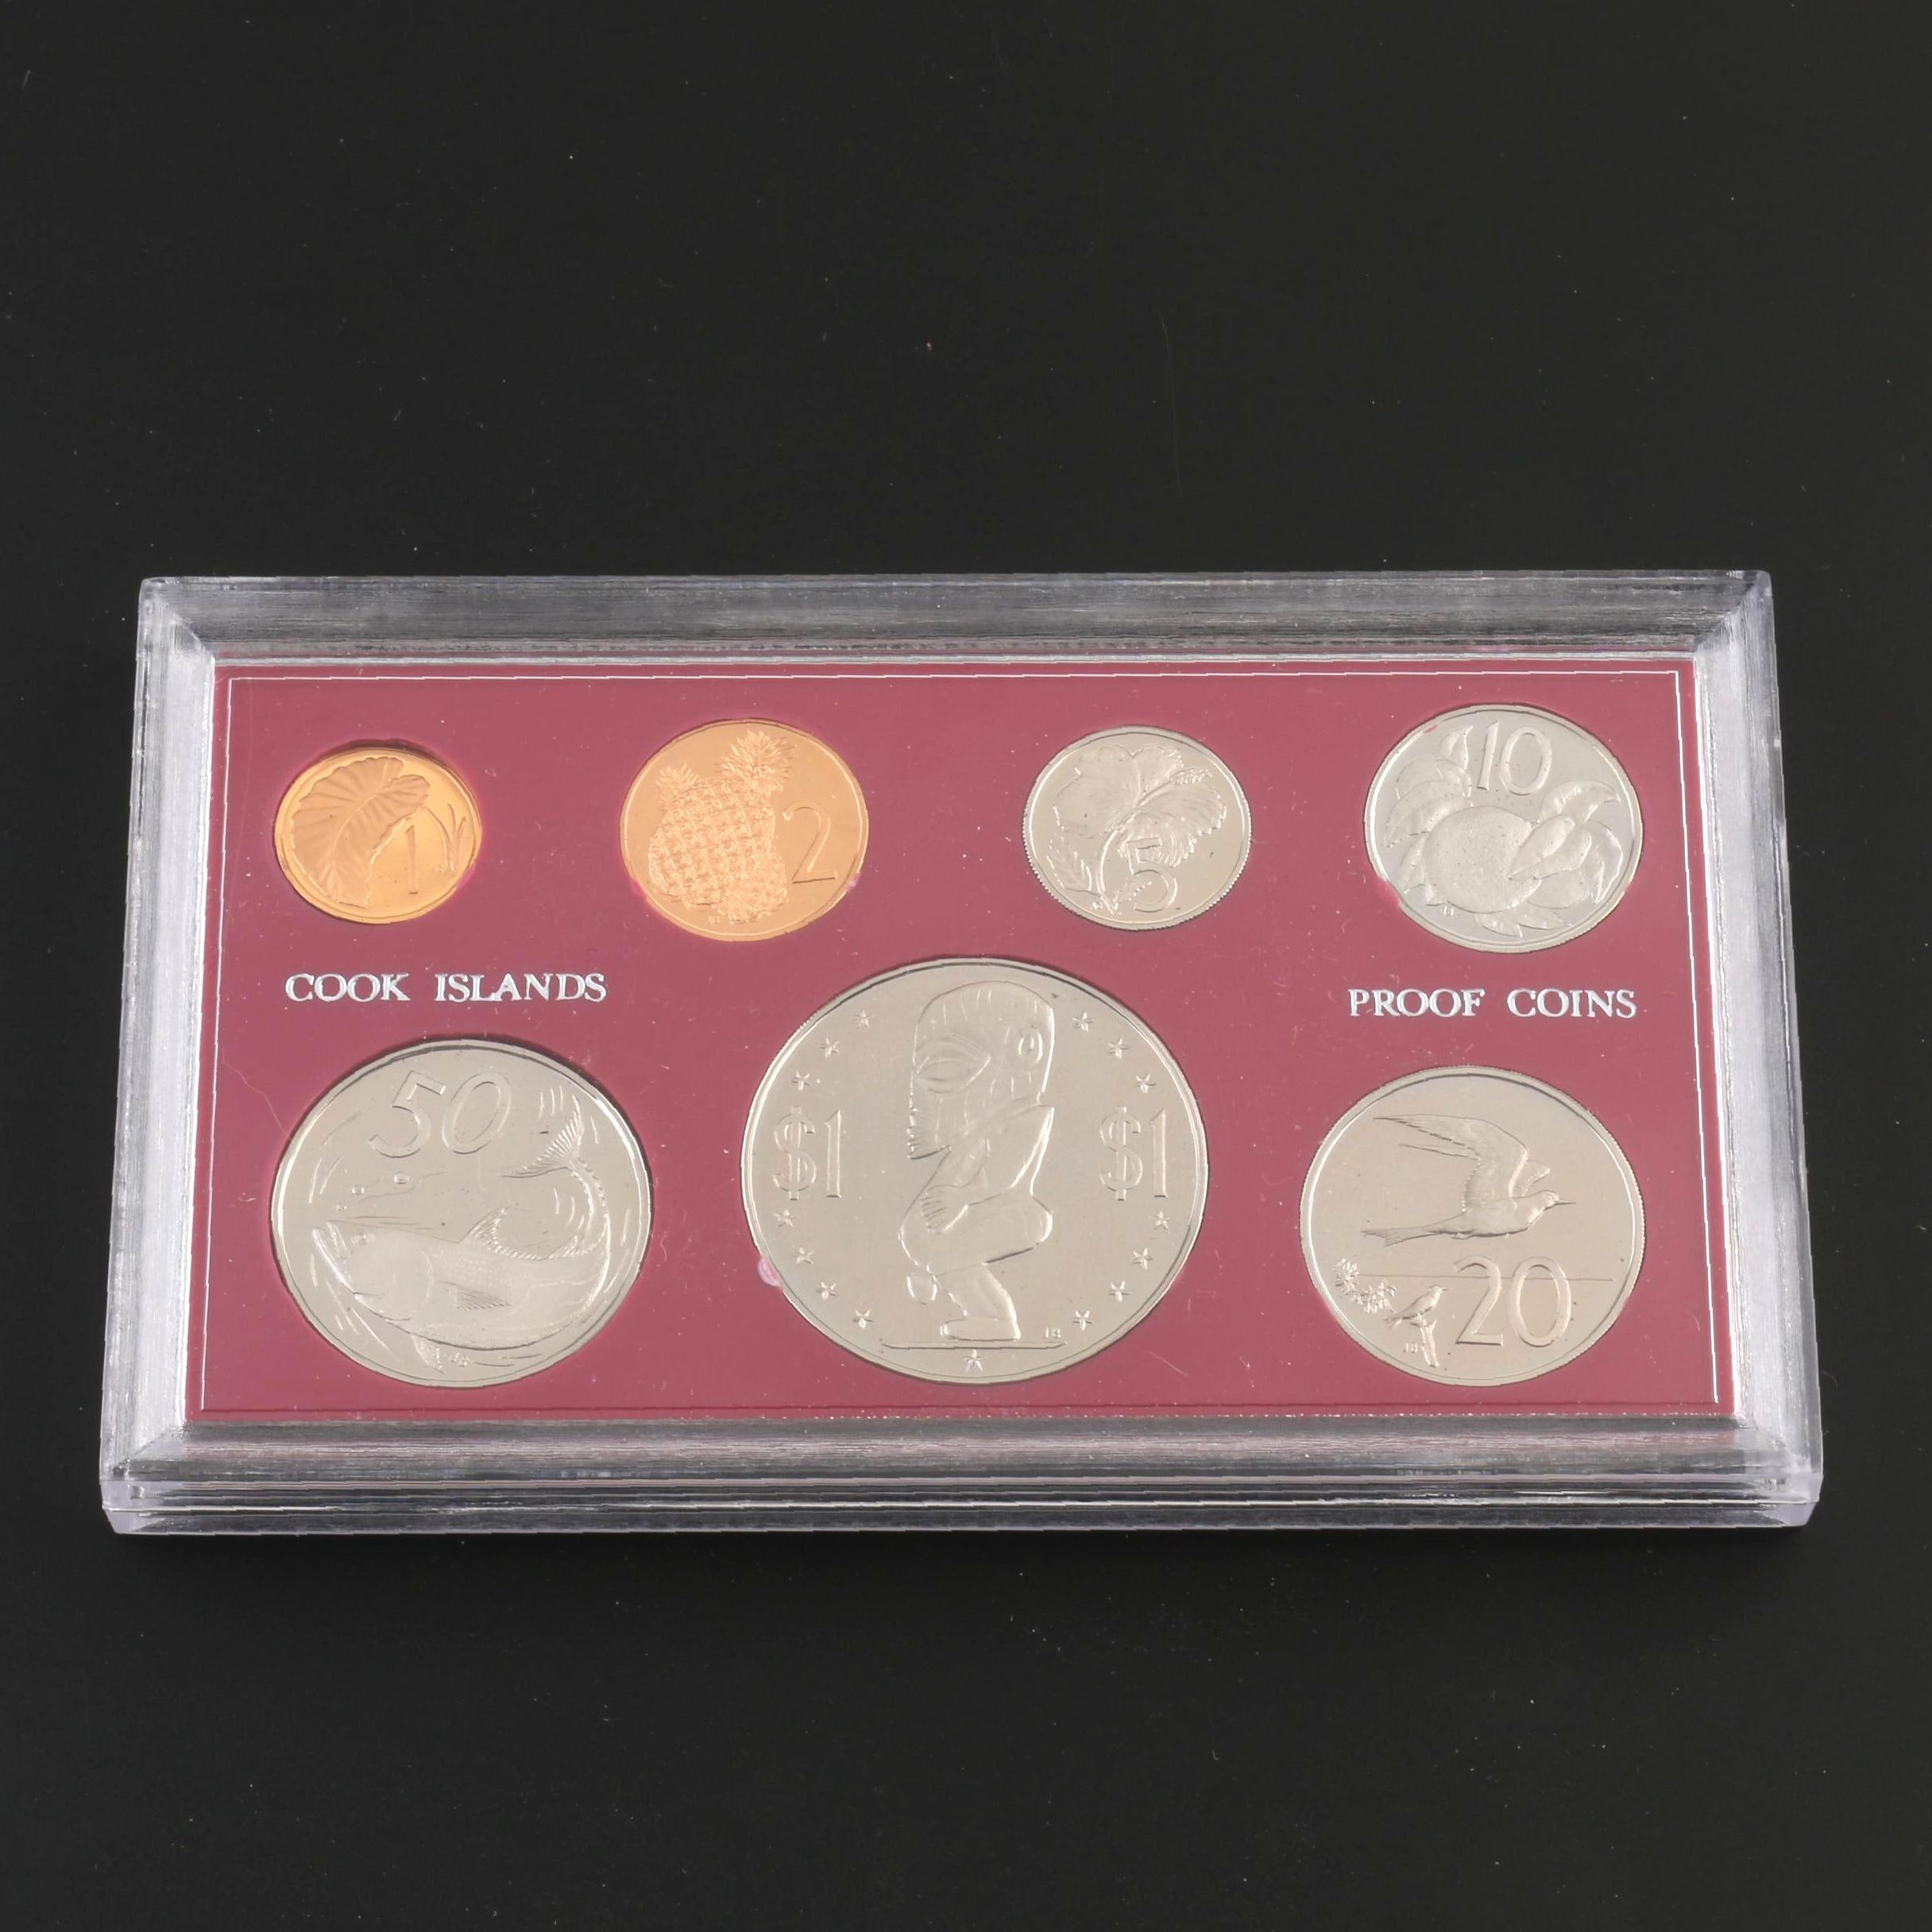 1972 Seven-Coin Proof Set From the Cook Islands